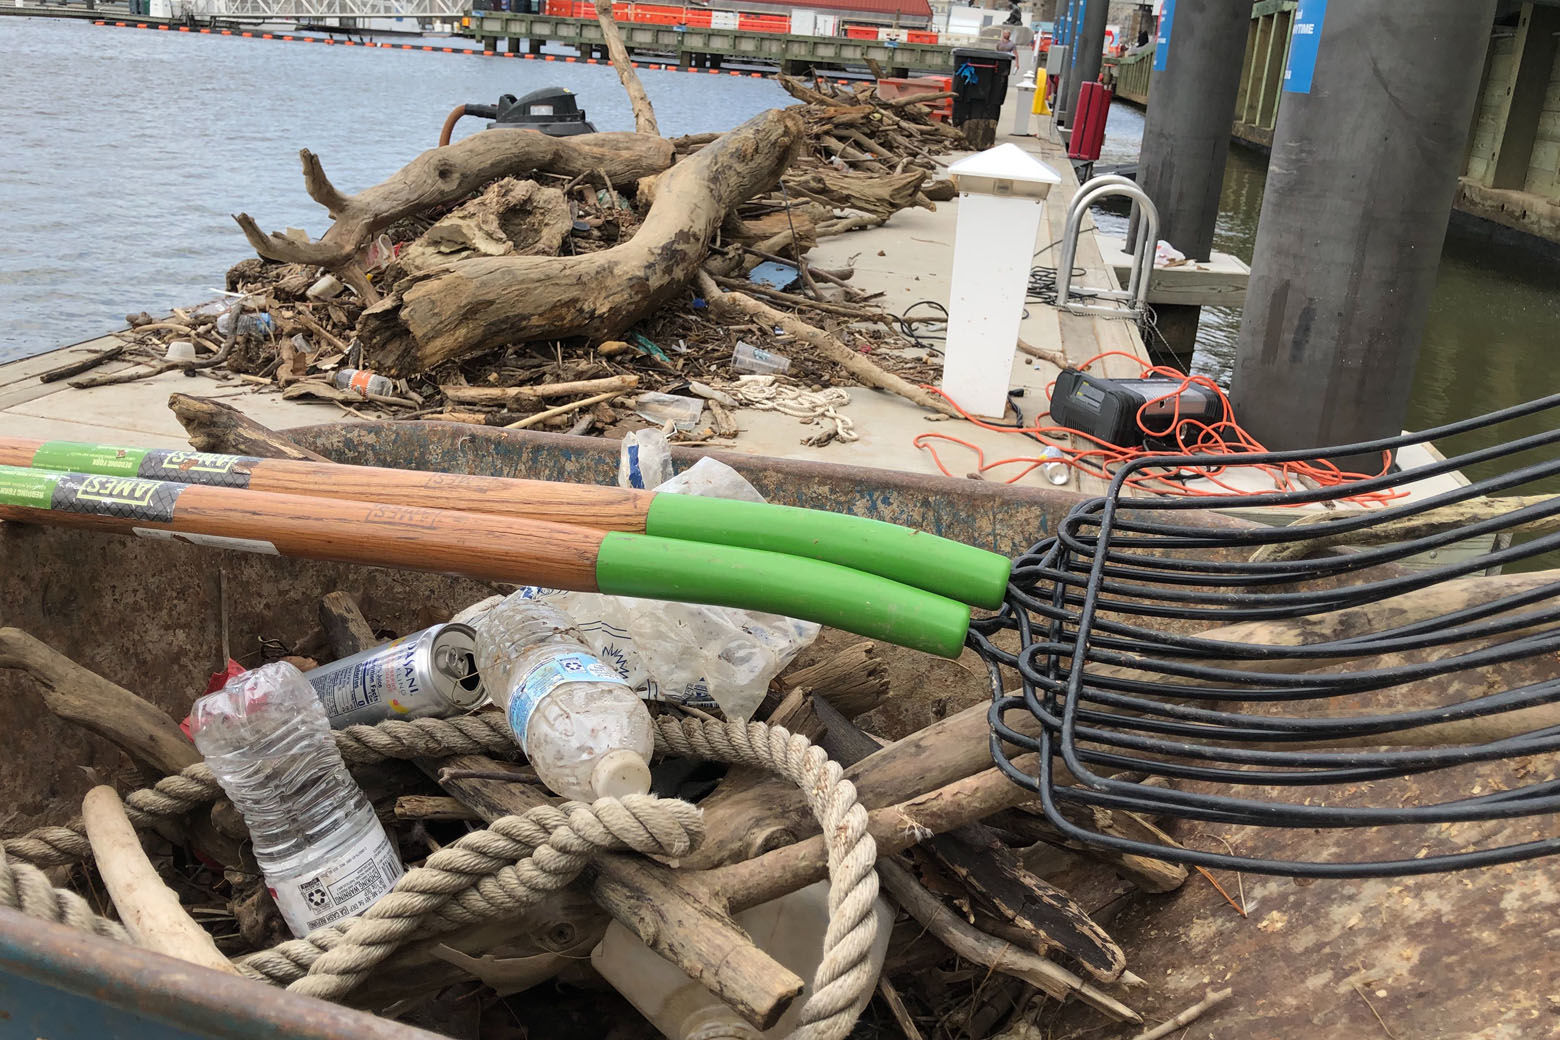 An ongoing team of volunteers, organizations and The Wharf working to clean up the channel along the Southwest waterfront in D.C. has removed enough wood and debris to fill four 30-yard dumpsters. (WTOP/Kristi King)